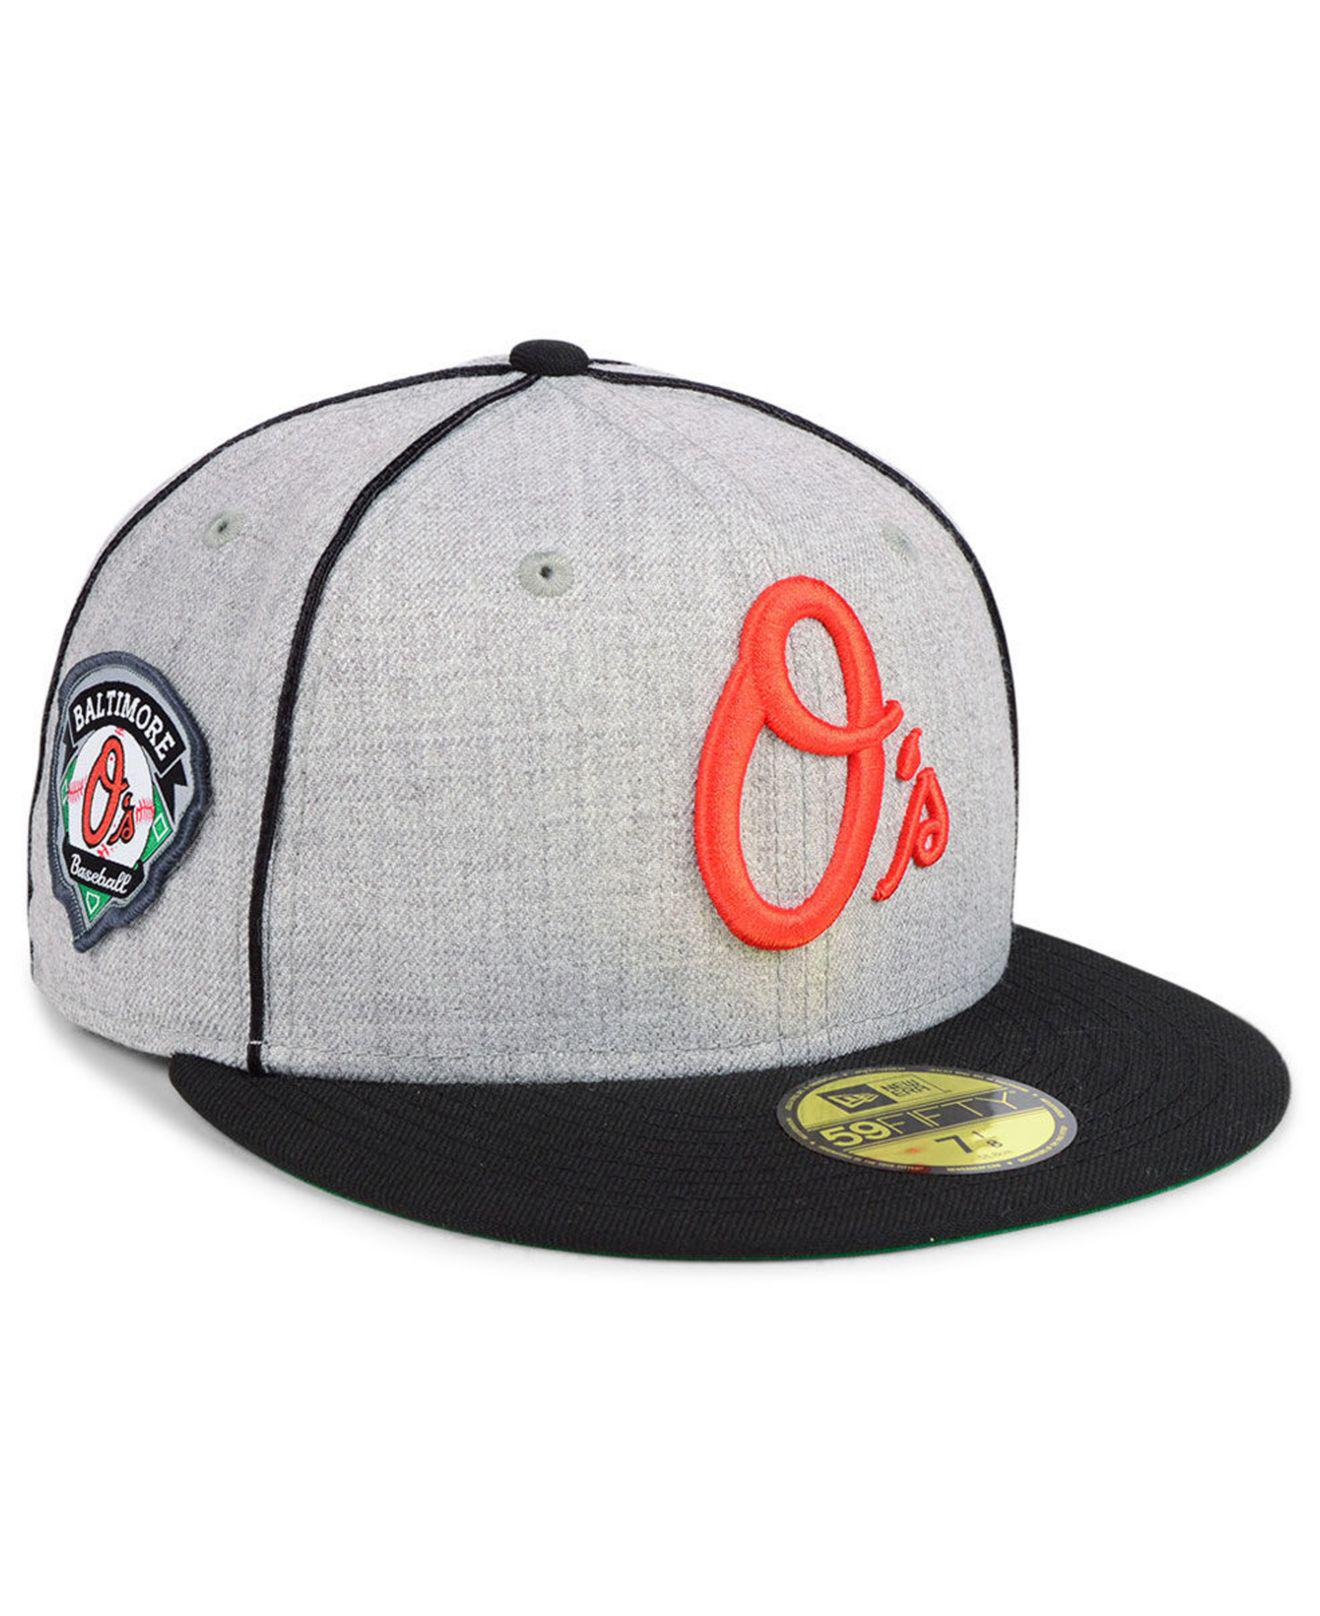 Lyst - KTZ Baltimore Orioles Stache 59fifty Fitted Cap for Men 93e31ab1d8d4